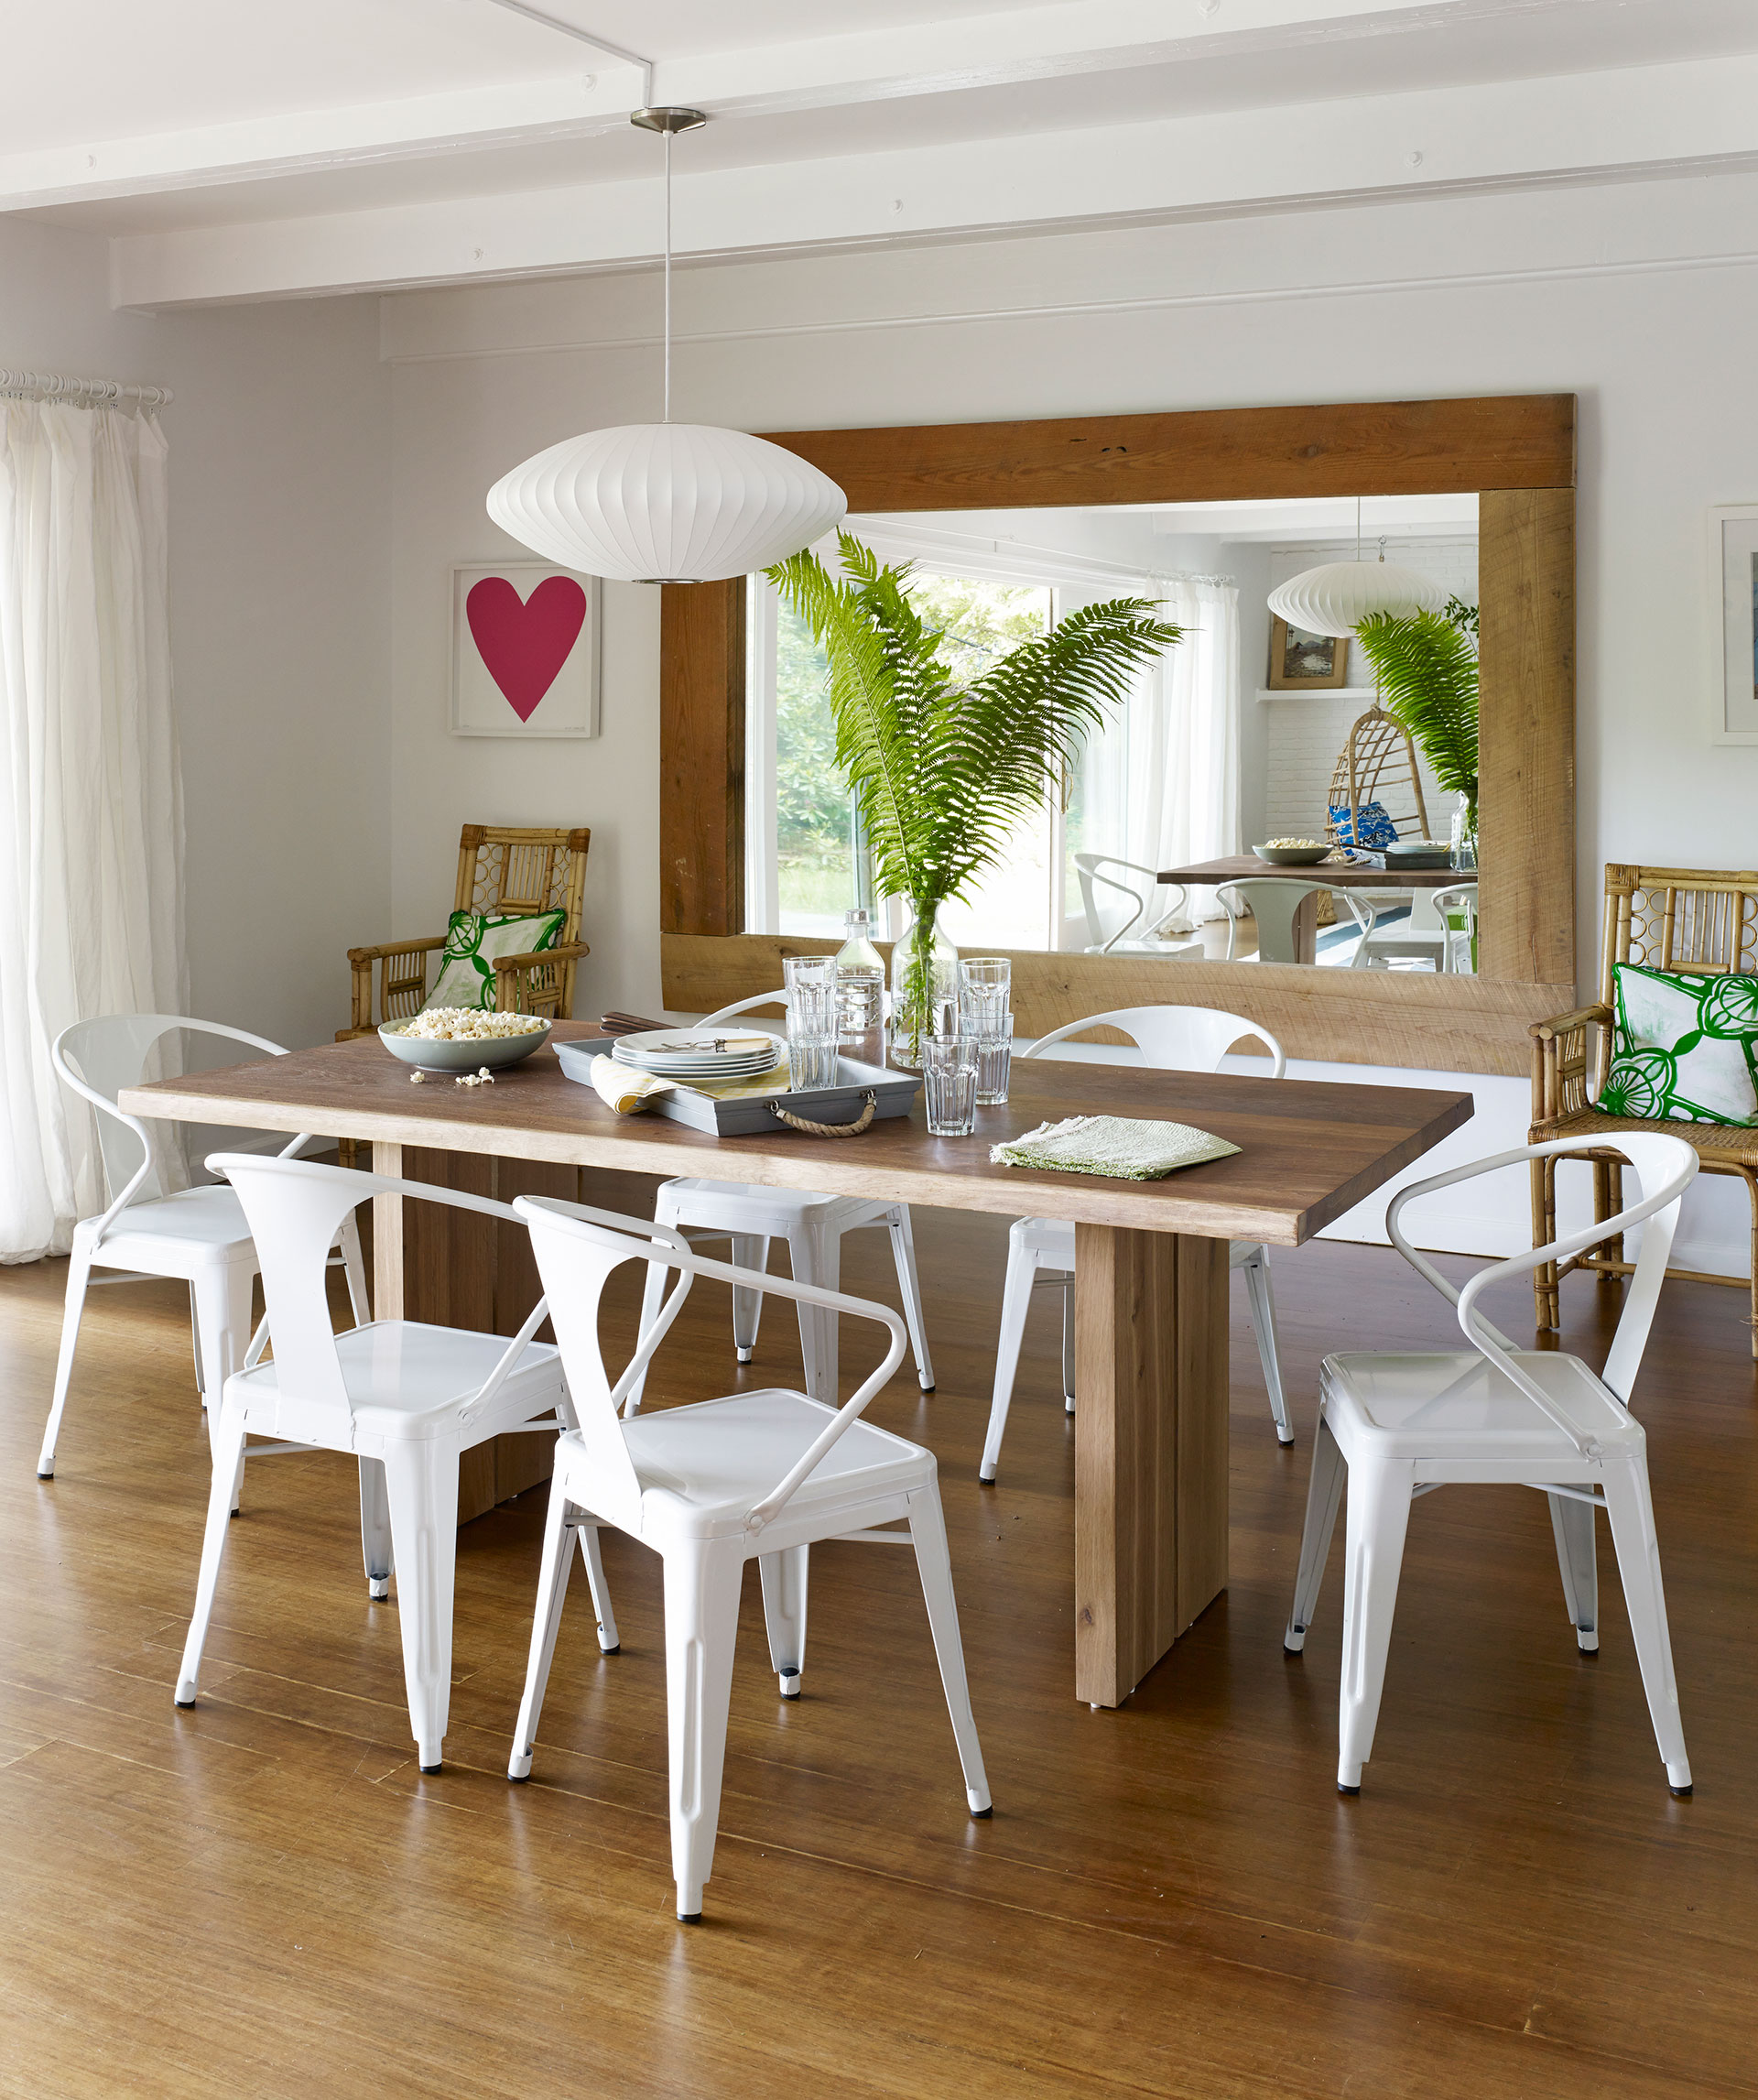 & ideas dining room decor home - Design Decoration